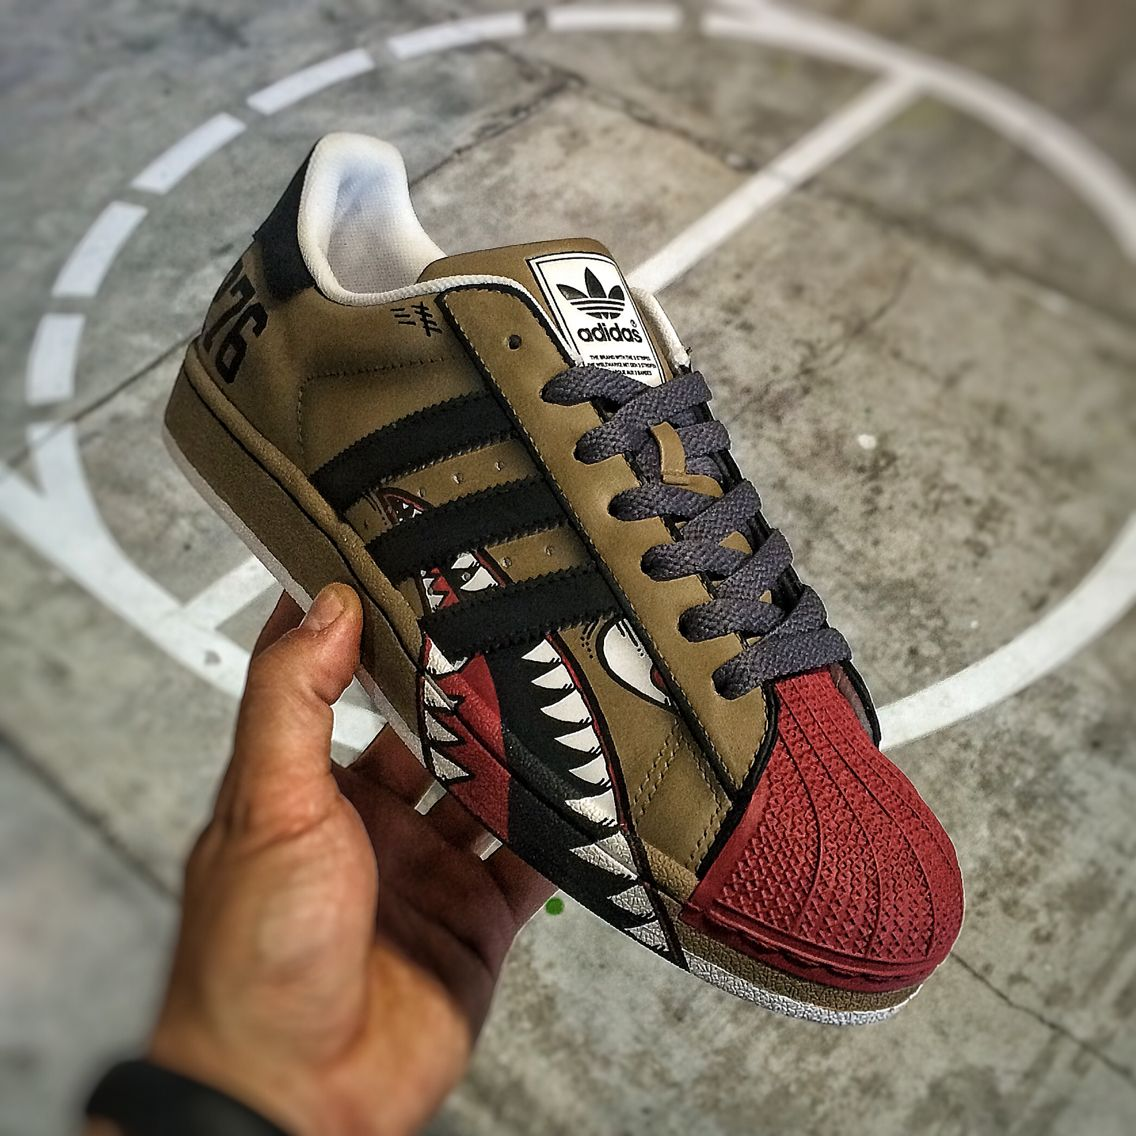 ed2e7e9da09 Custom Adidas Superstar II WarBird Dee || Follow FILET. for more street  wear #